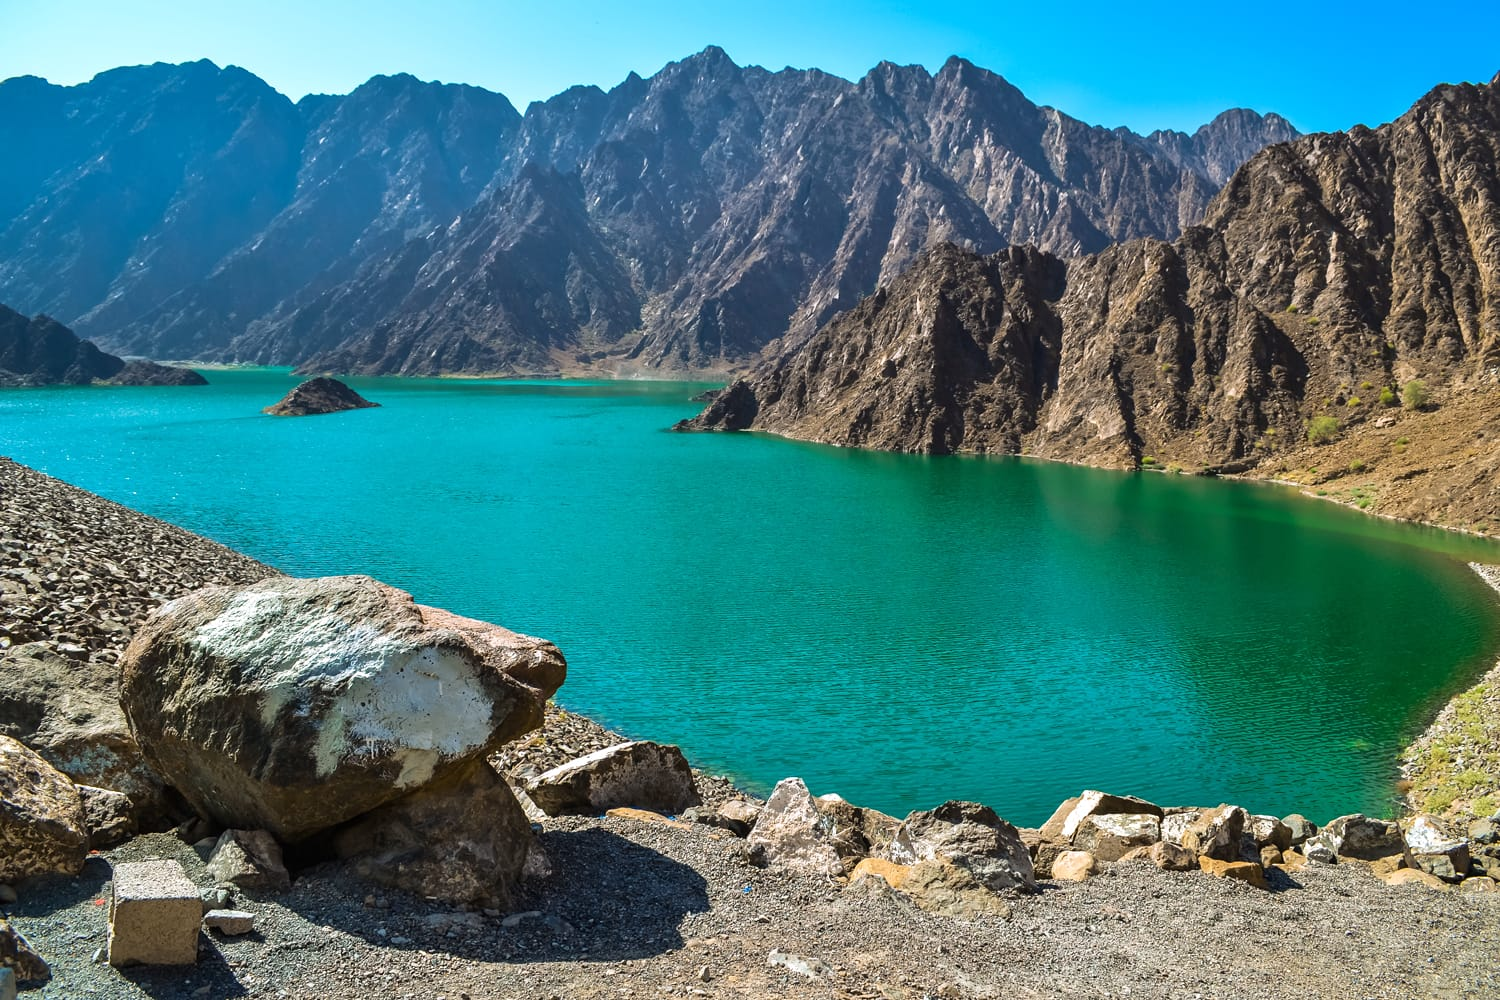 Hatta Dam Green Lake between mountains in Dubai, United Arab Emirates